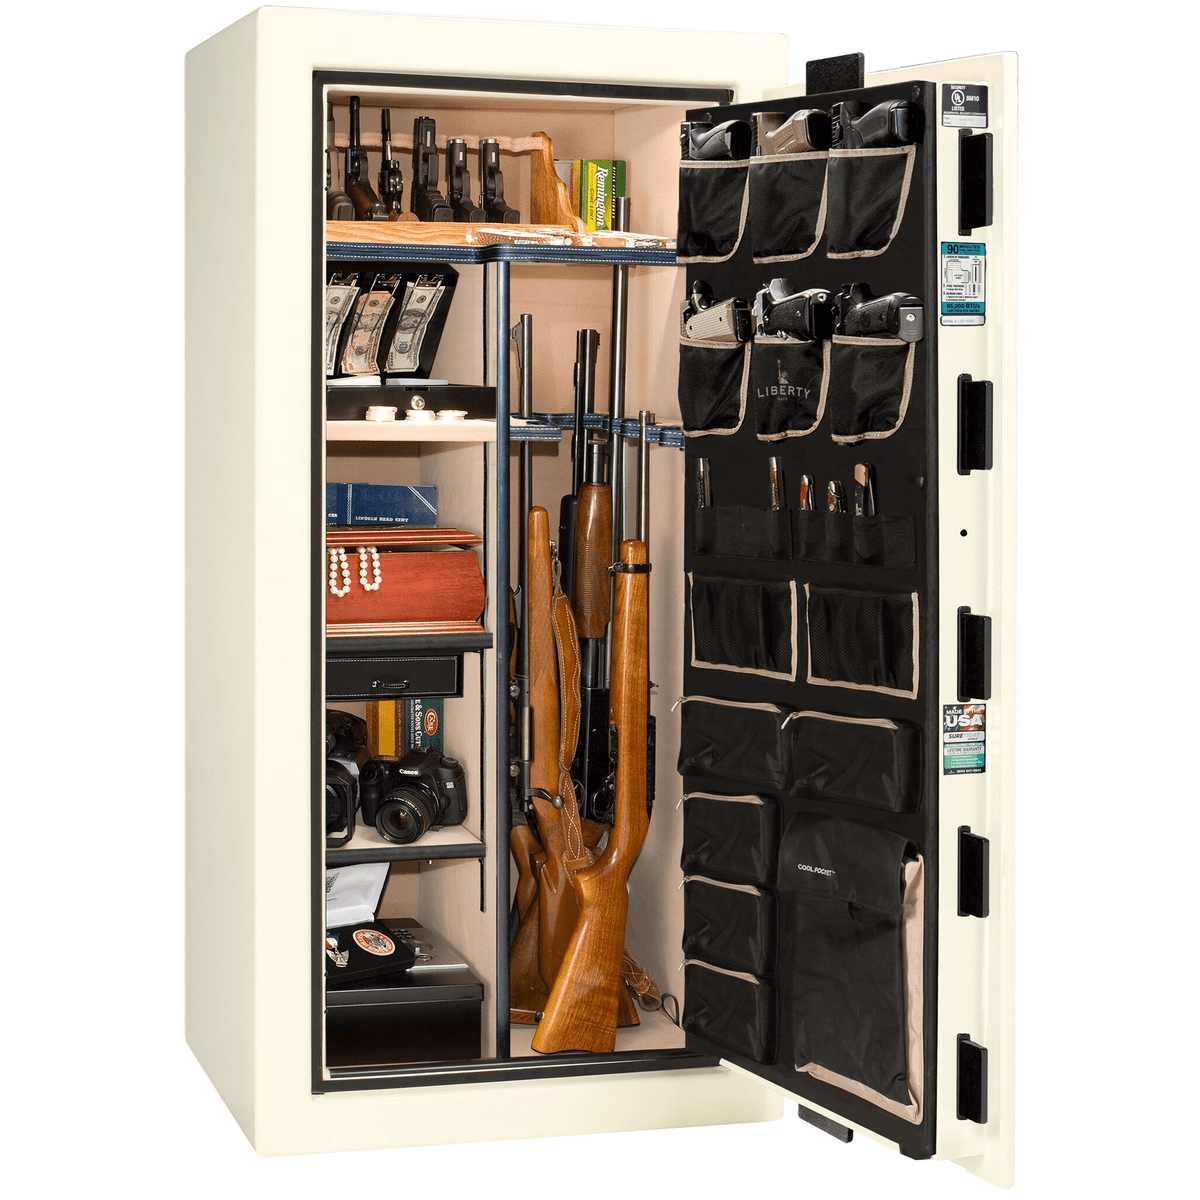 "Lincoln Series | Level 5 Security | 110 Minute Fire Protection | 40 | Dimensions: 66.5""(H) x 36""(W) x 32""(D) 